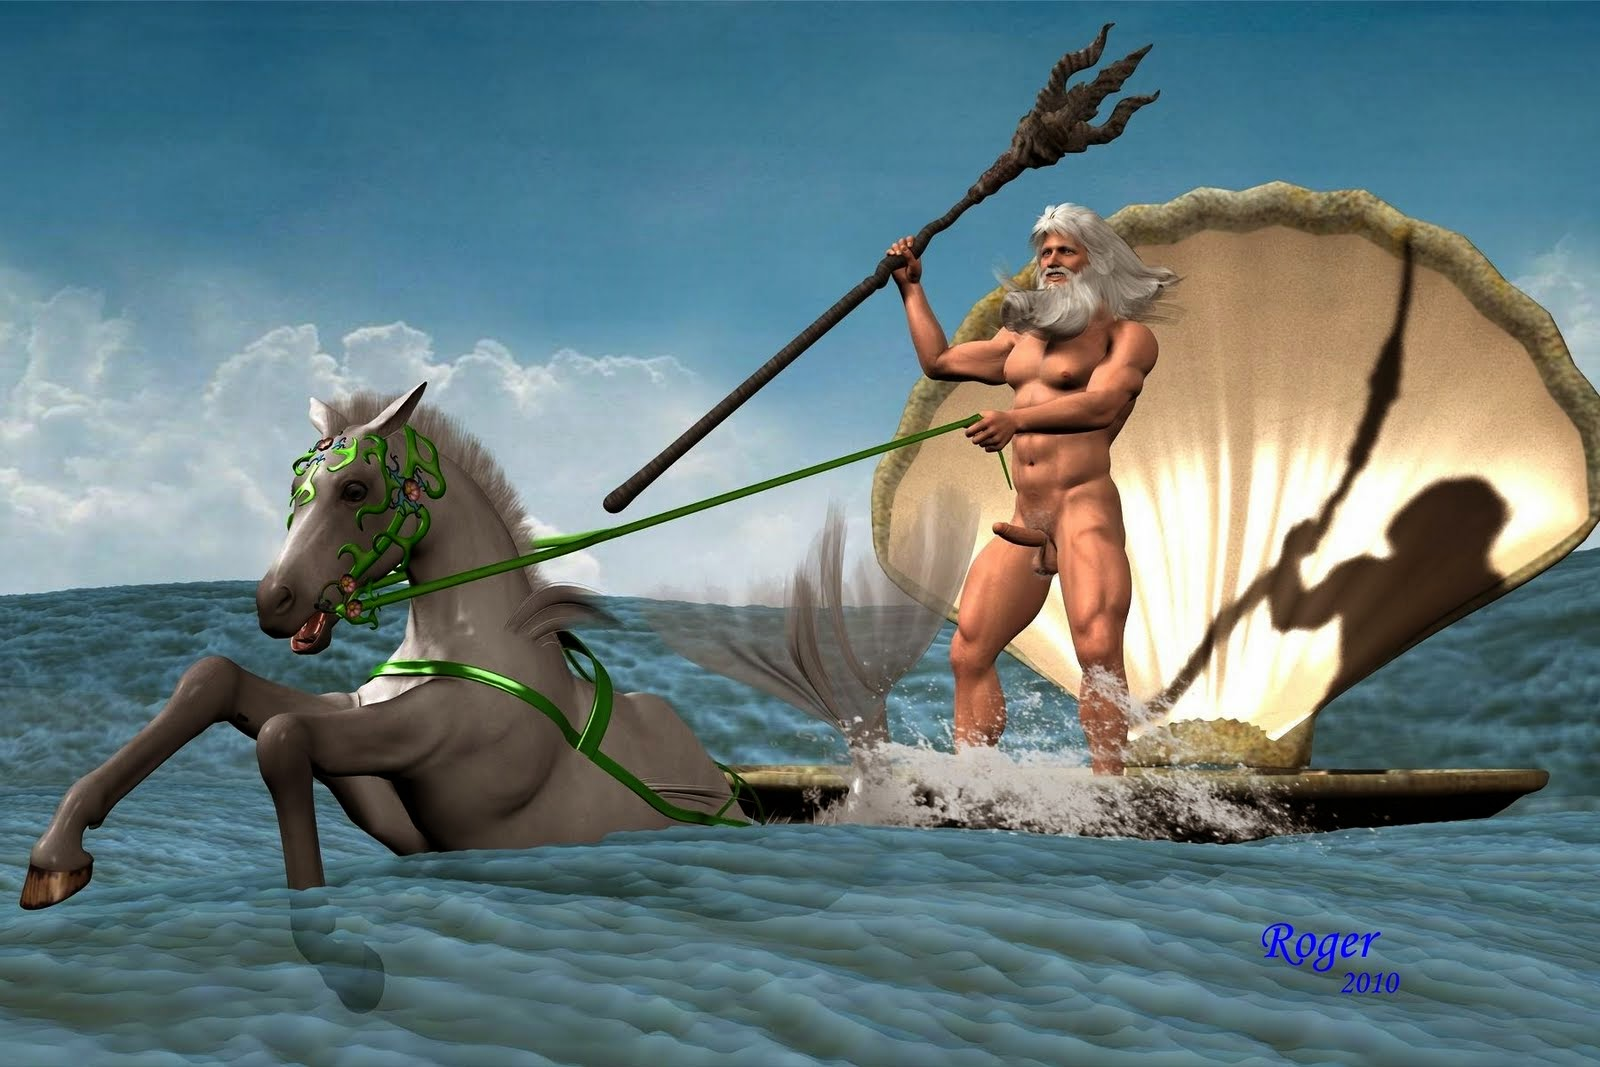 Would you take diet advice from this man? Rogerdusky+Poseidon+god+of+the+seas